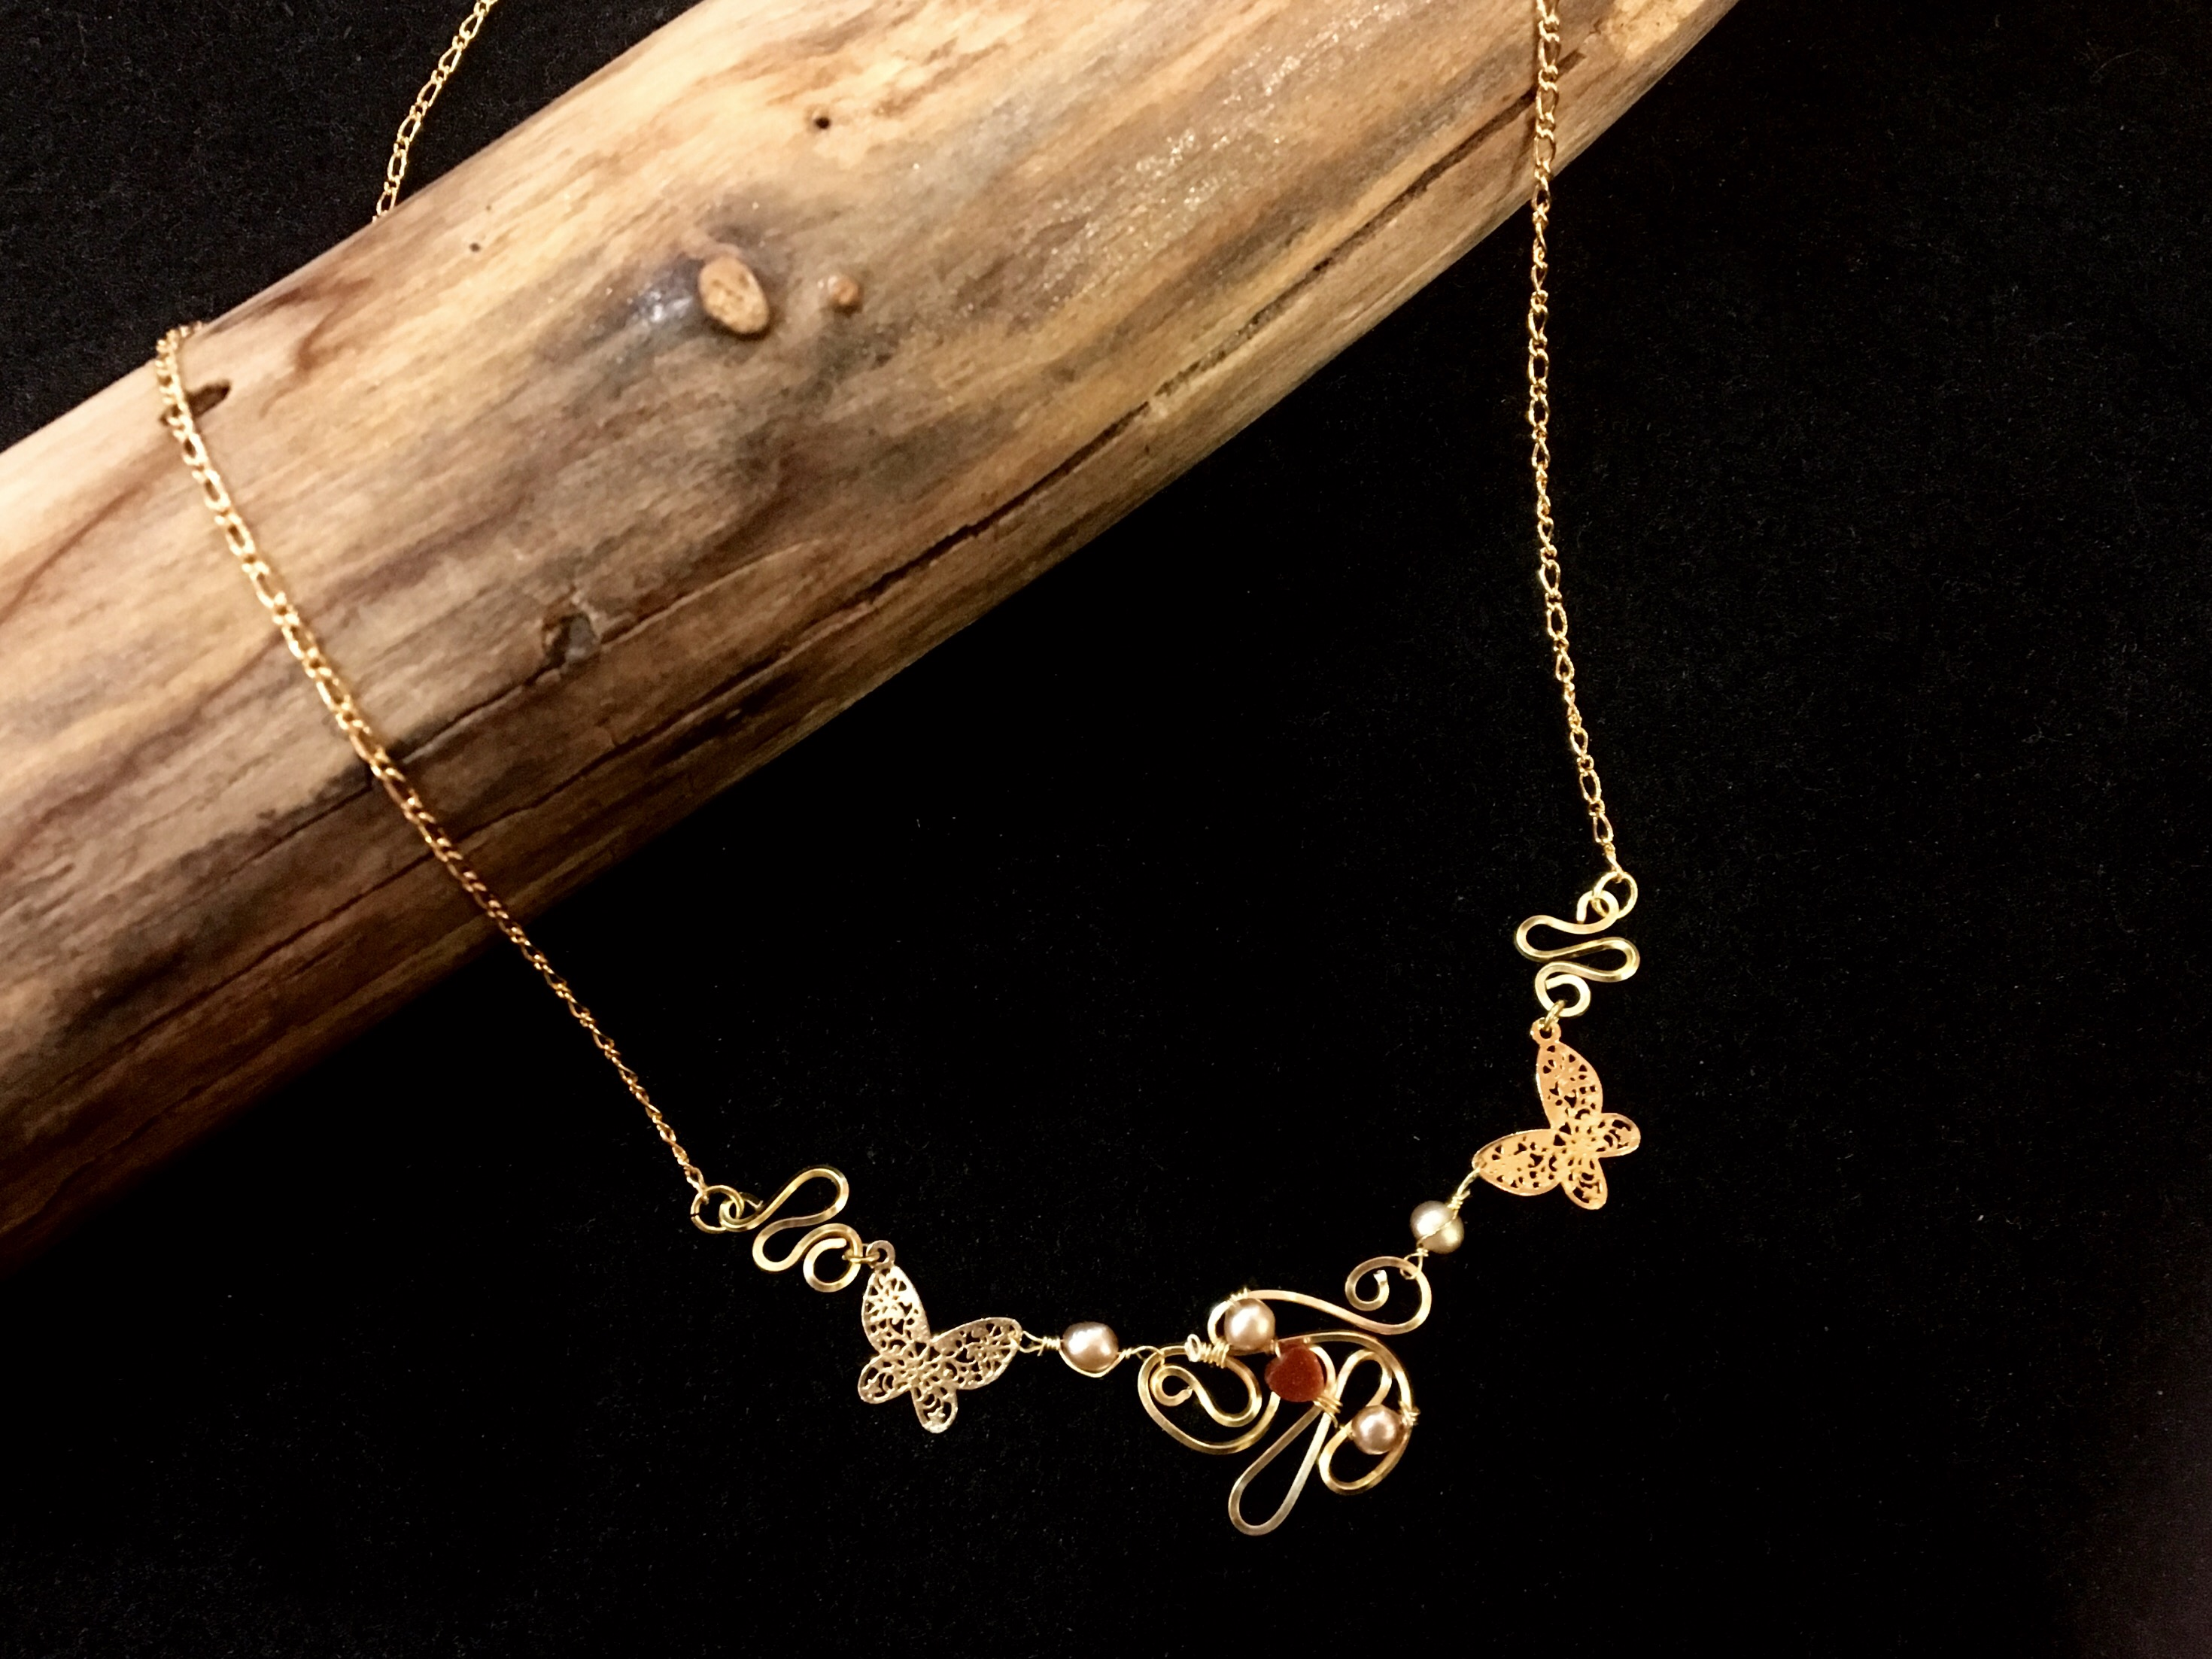 Dainty Deva Necklace - Goldfileld Butterflies - Silver Plated Gold Color